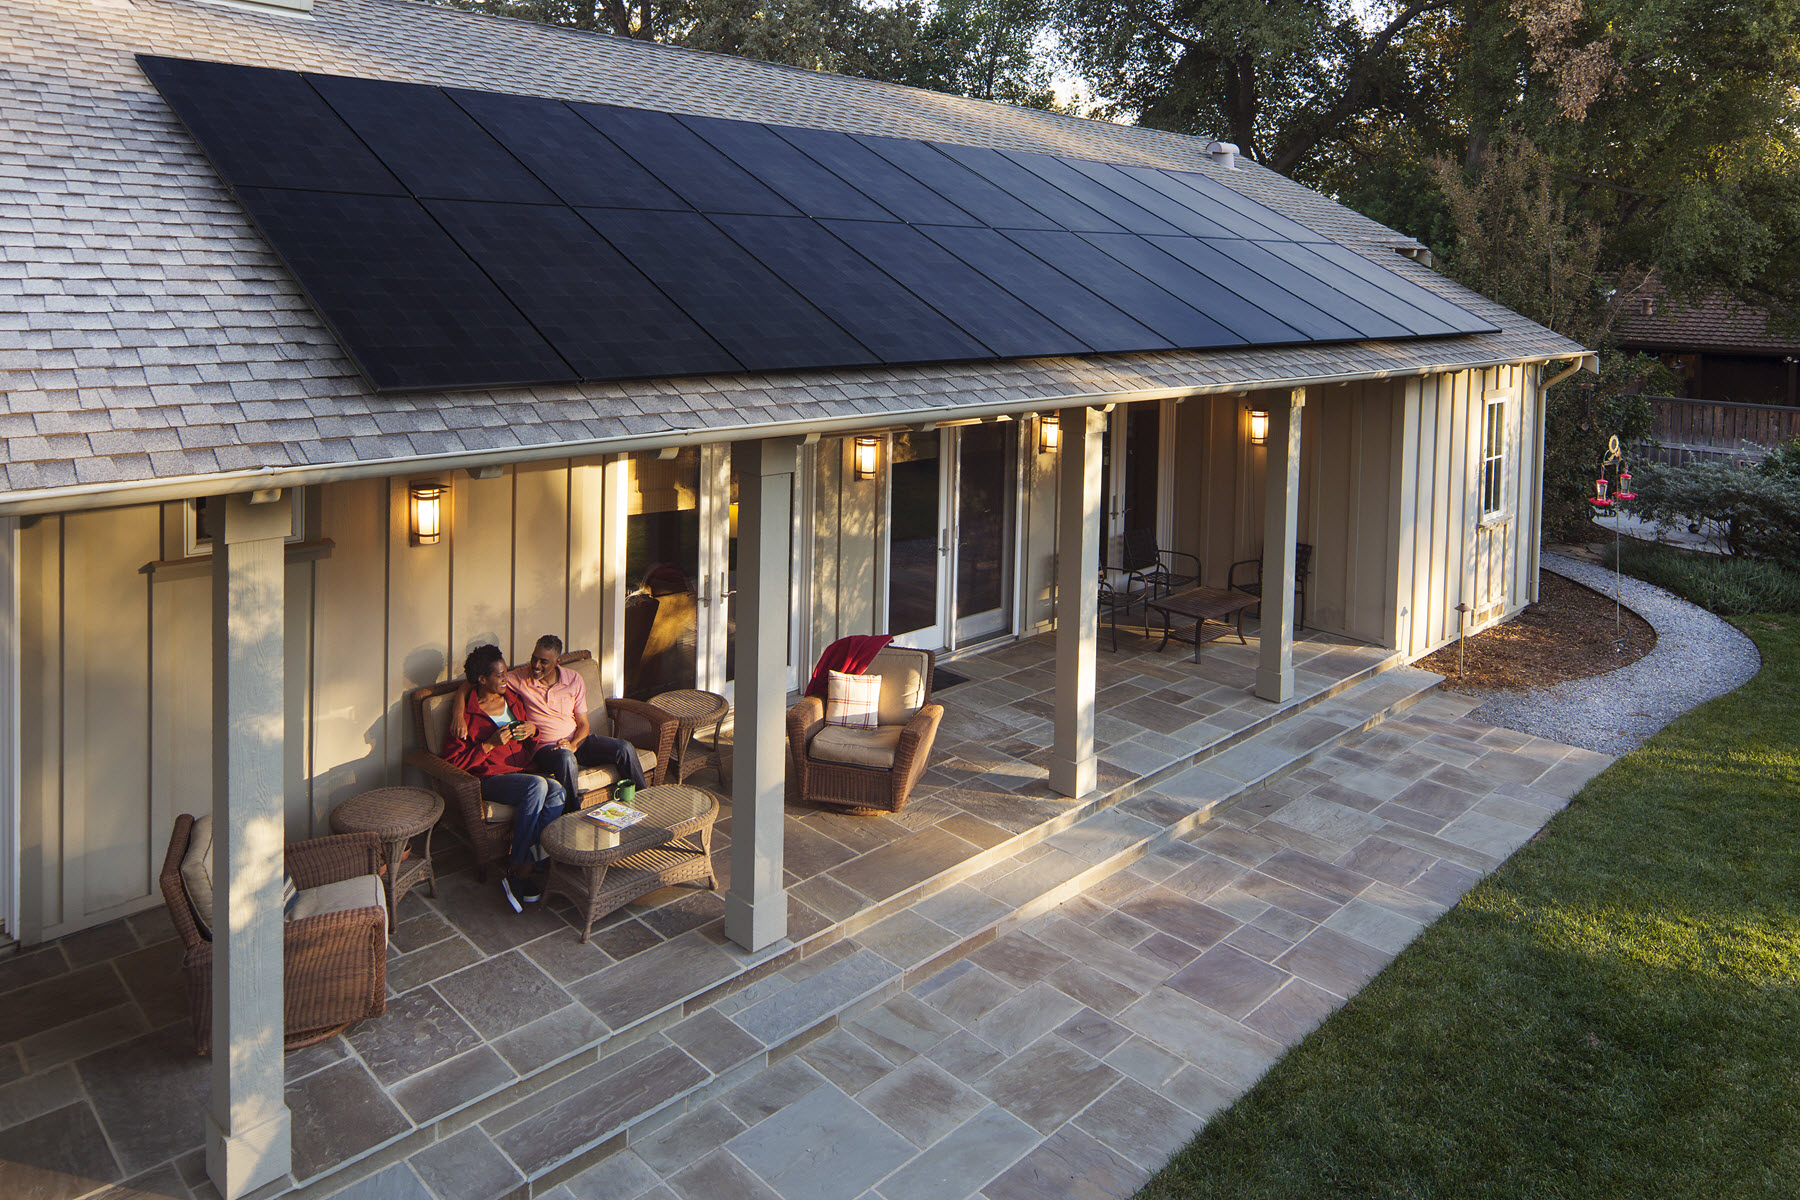 Southern California Electric >> Baker Electric Solar is Premier Source for New SunPower ...